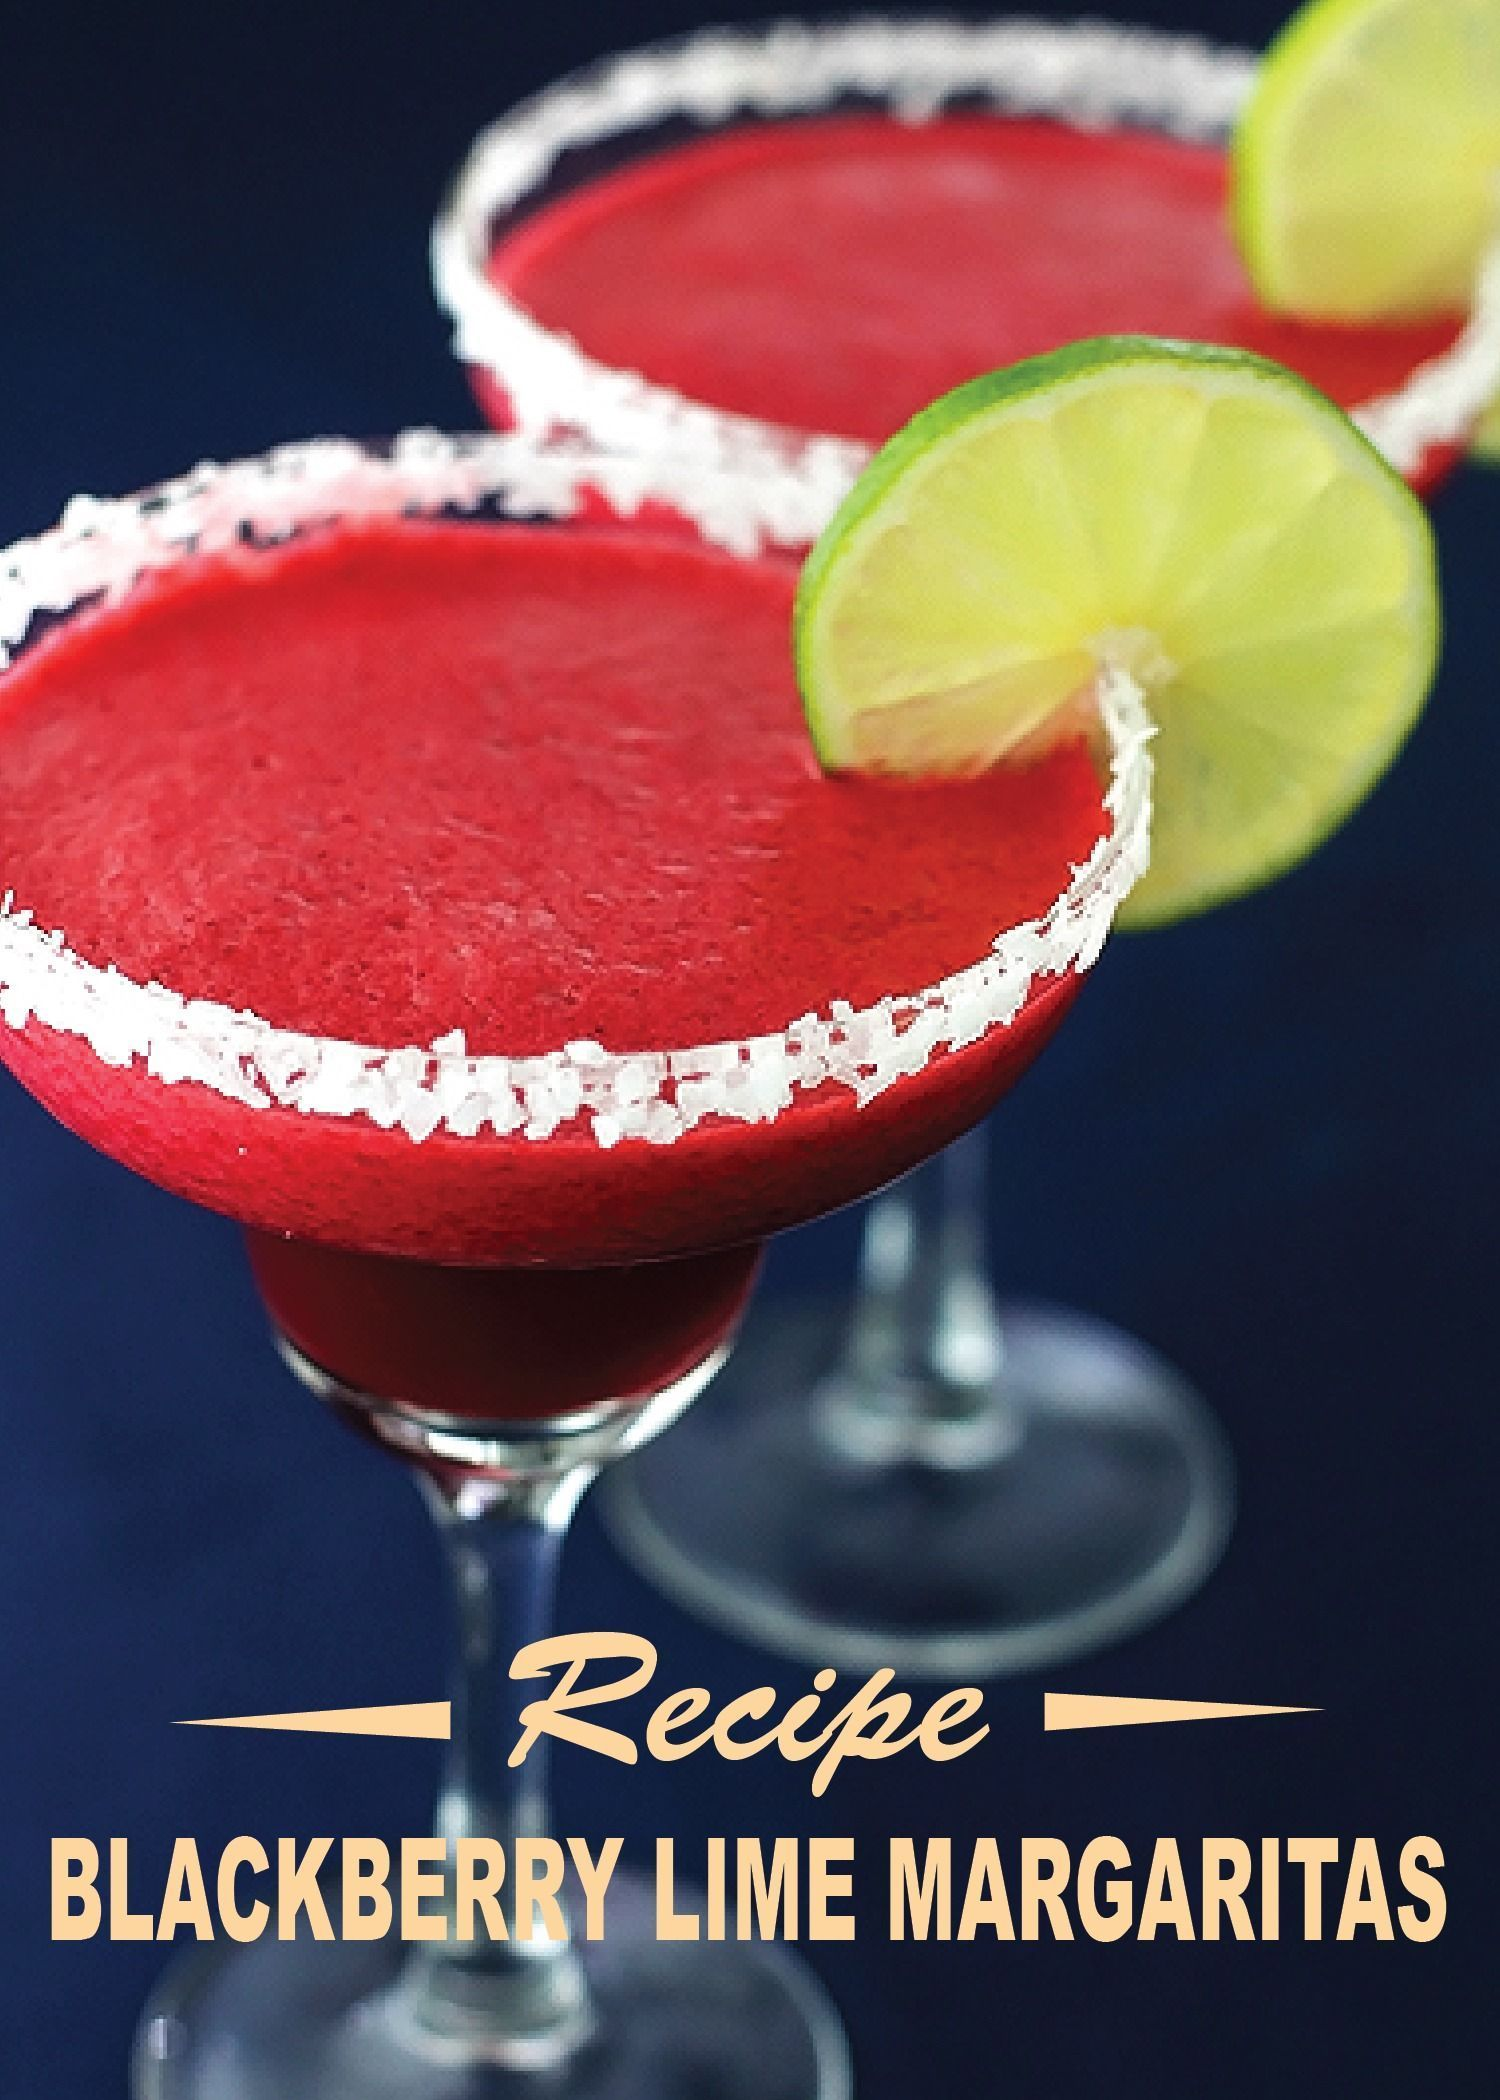 Blackberry Lime Margaritas #limemargarita Switch things up at your next party by making these delicious Blackberry Lime Margaritas! Pin and save this drink recipe for later! #limemargarita Blackberry Lime Margaritas #limemargarita Switch things up at your next party by making these delicious Blackberry Lime Margaritas! Pin and save this drink recipe for later! #limemargarita